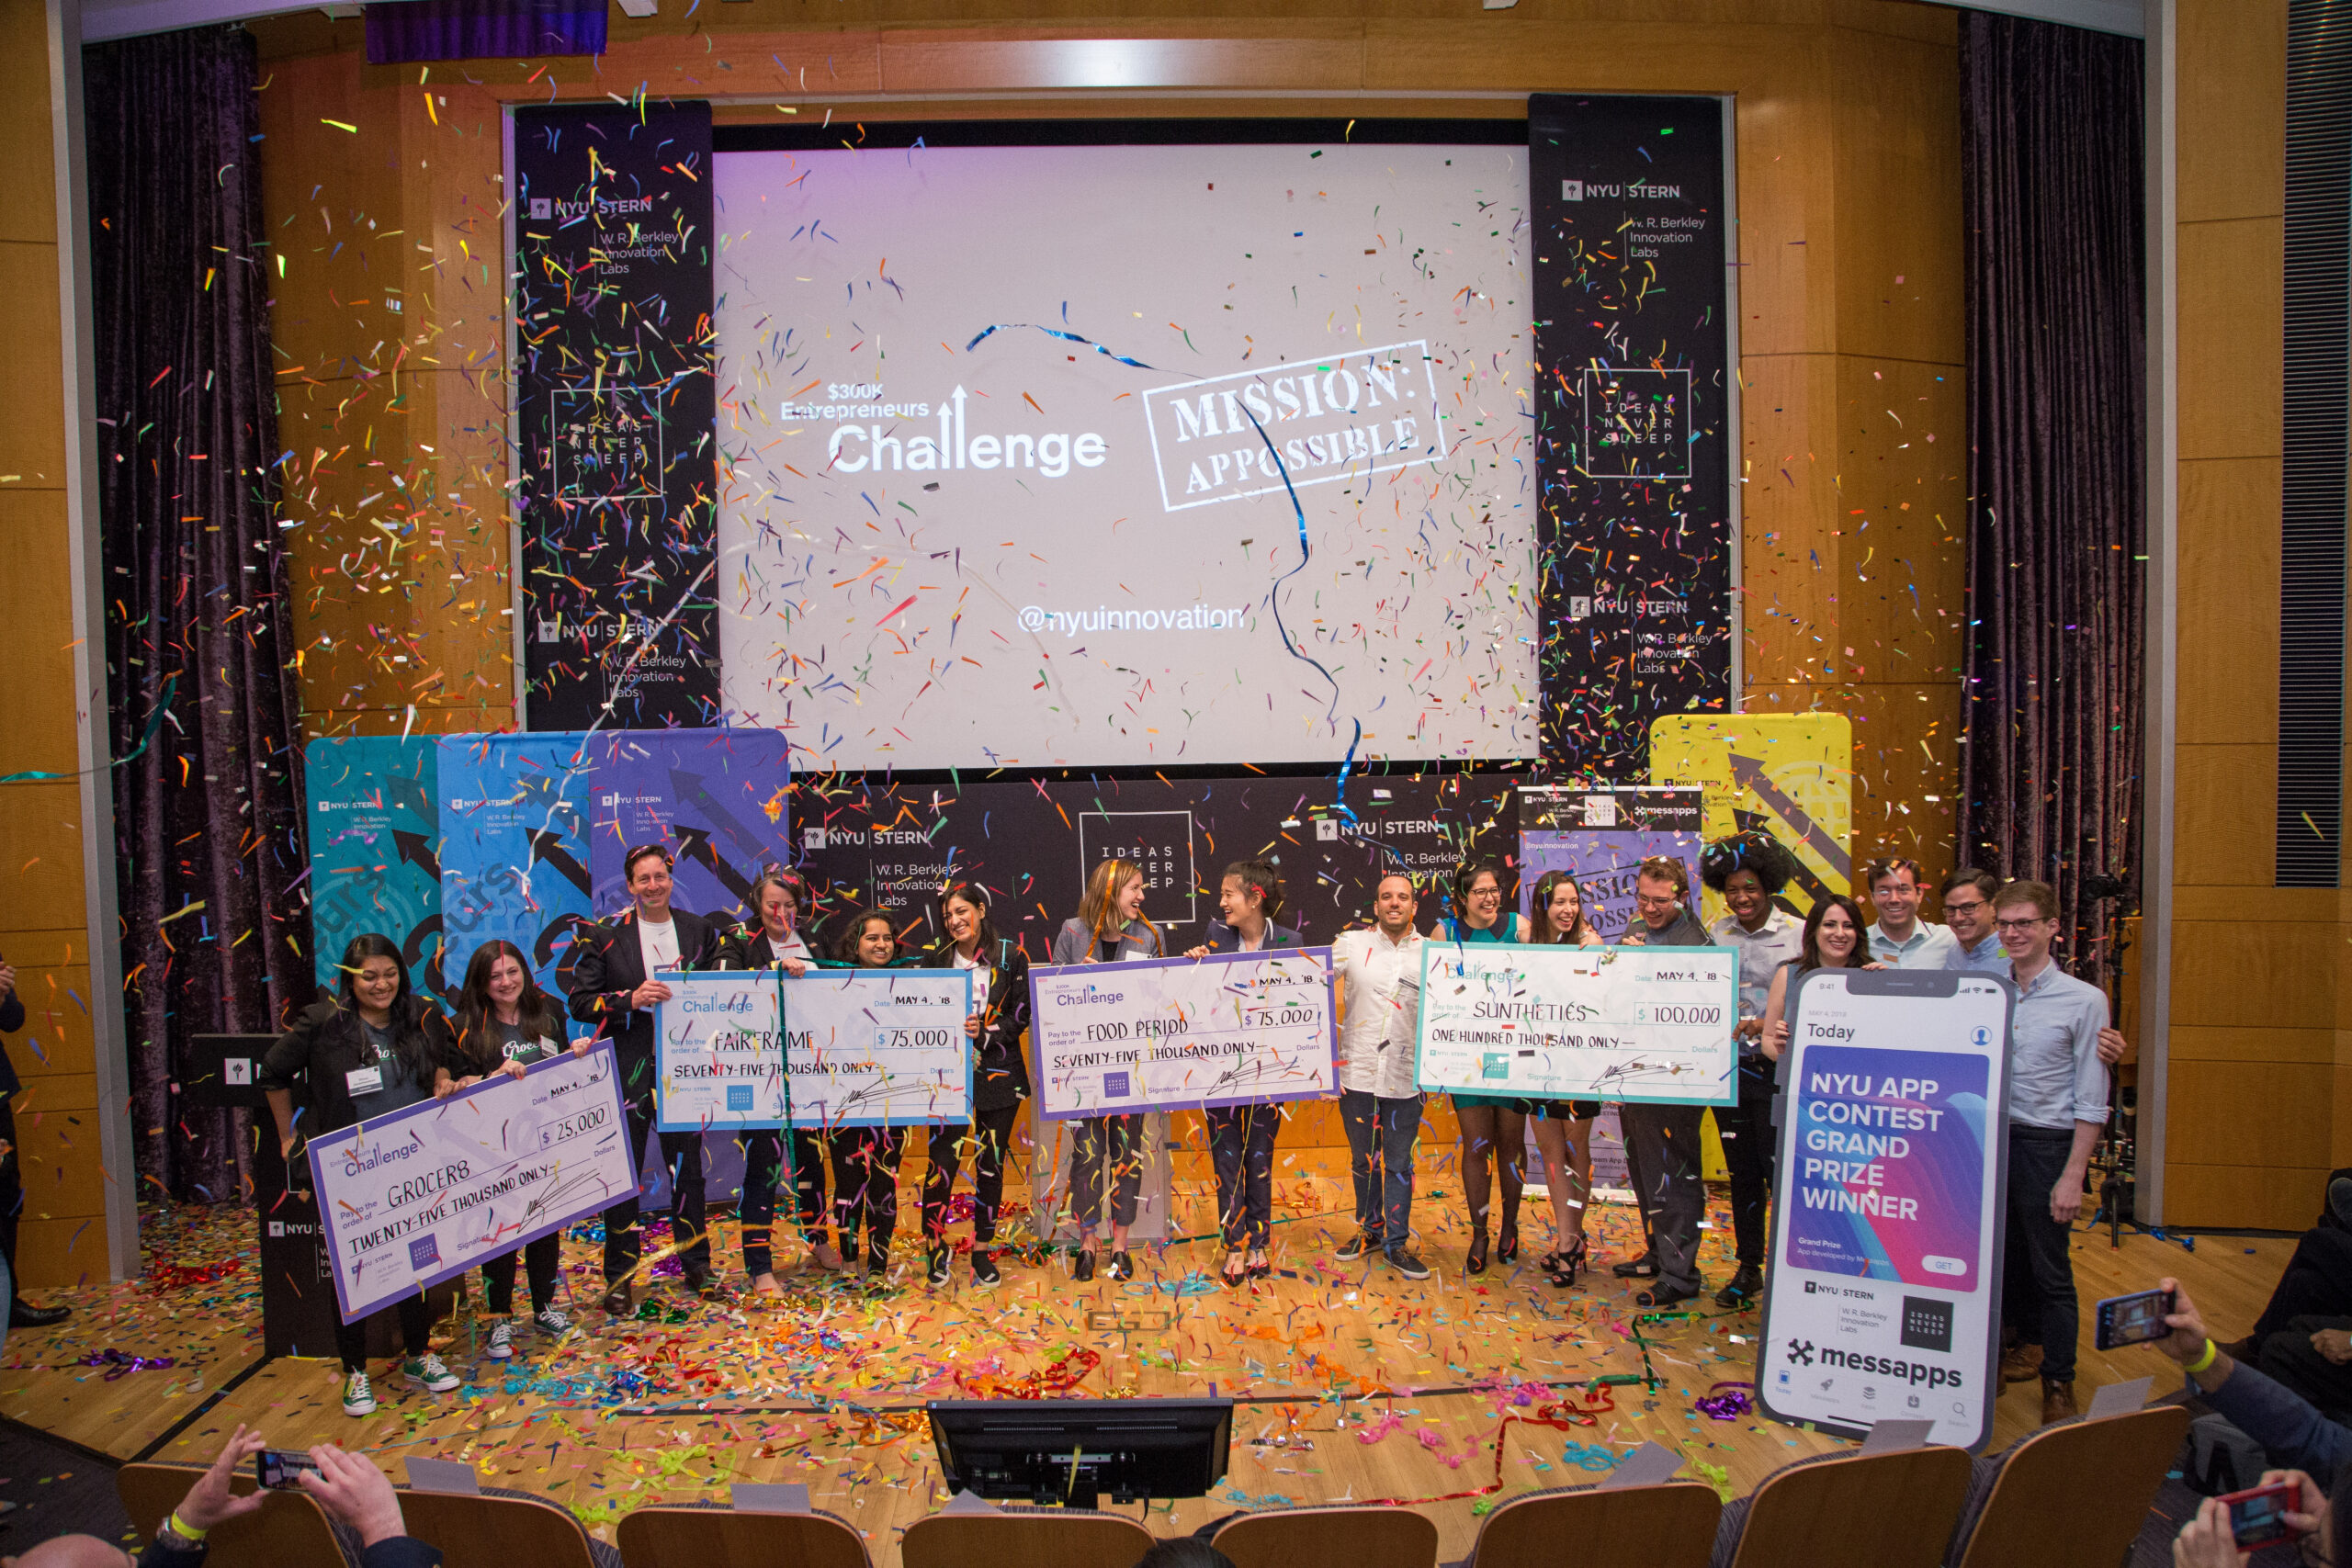 Entrepreneurs Challenge Winners on the stage with confetti and large checks.